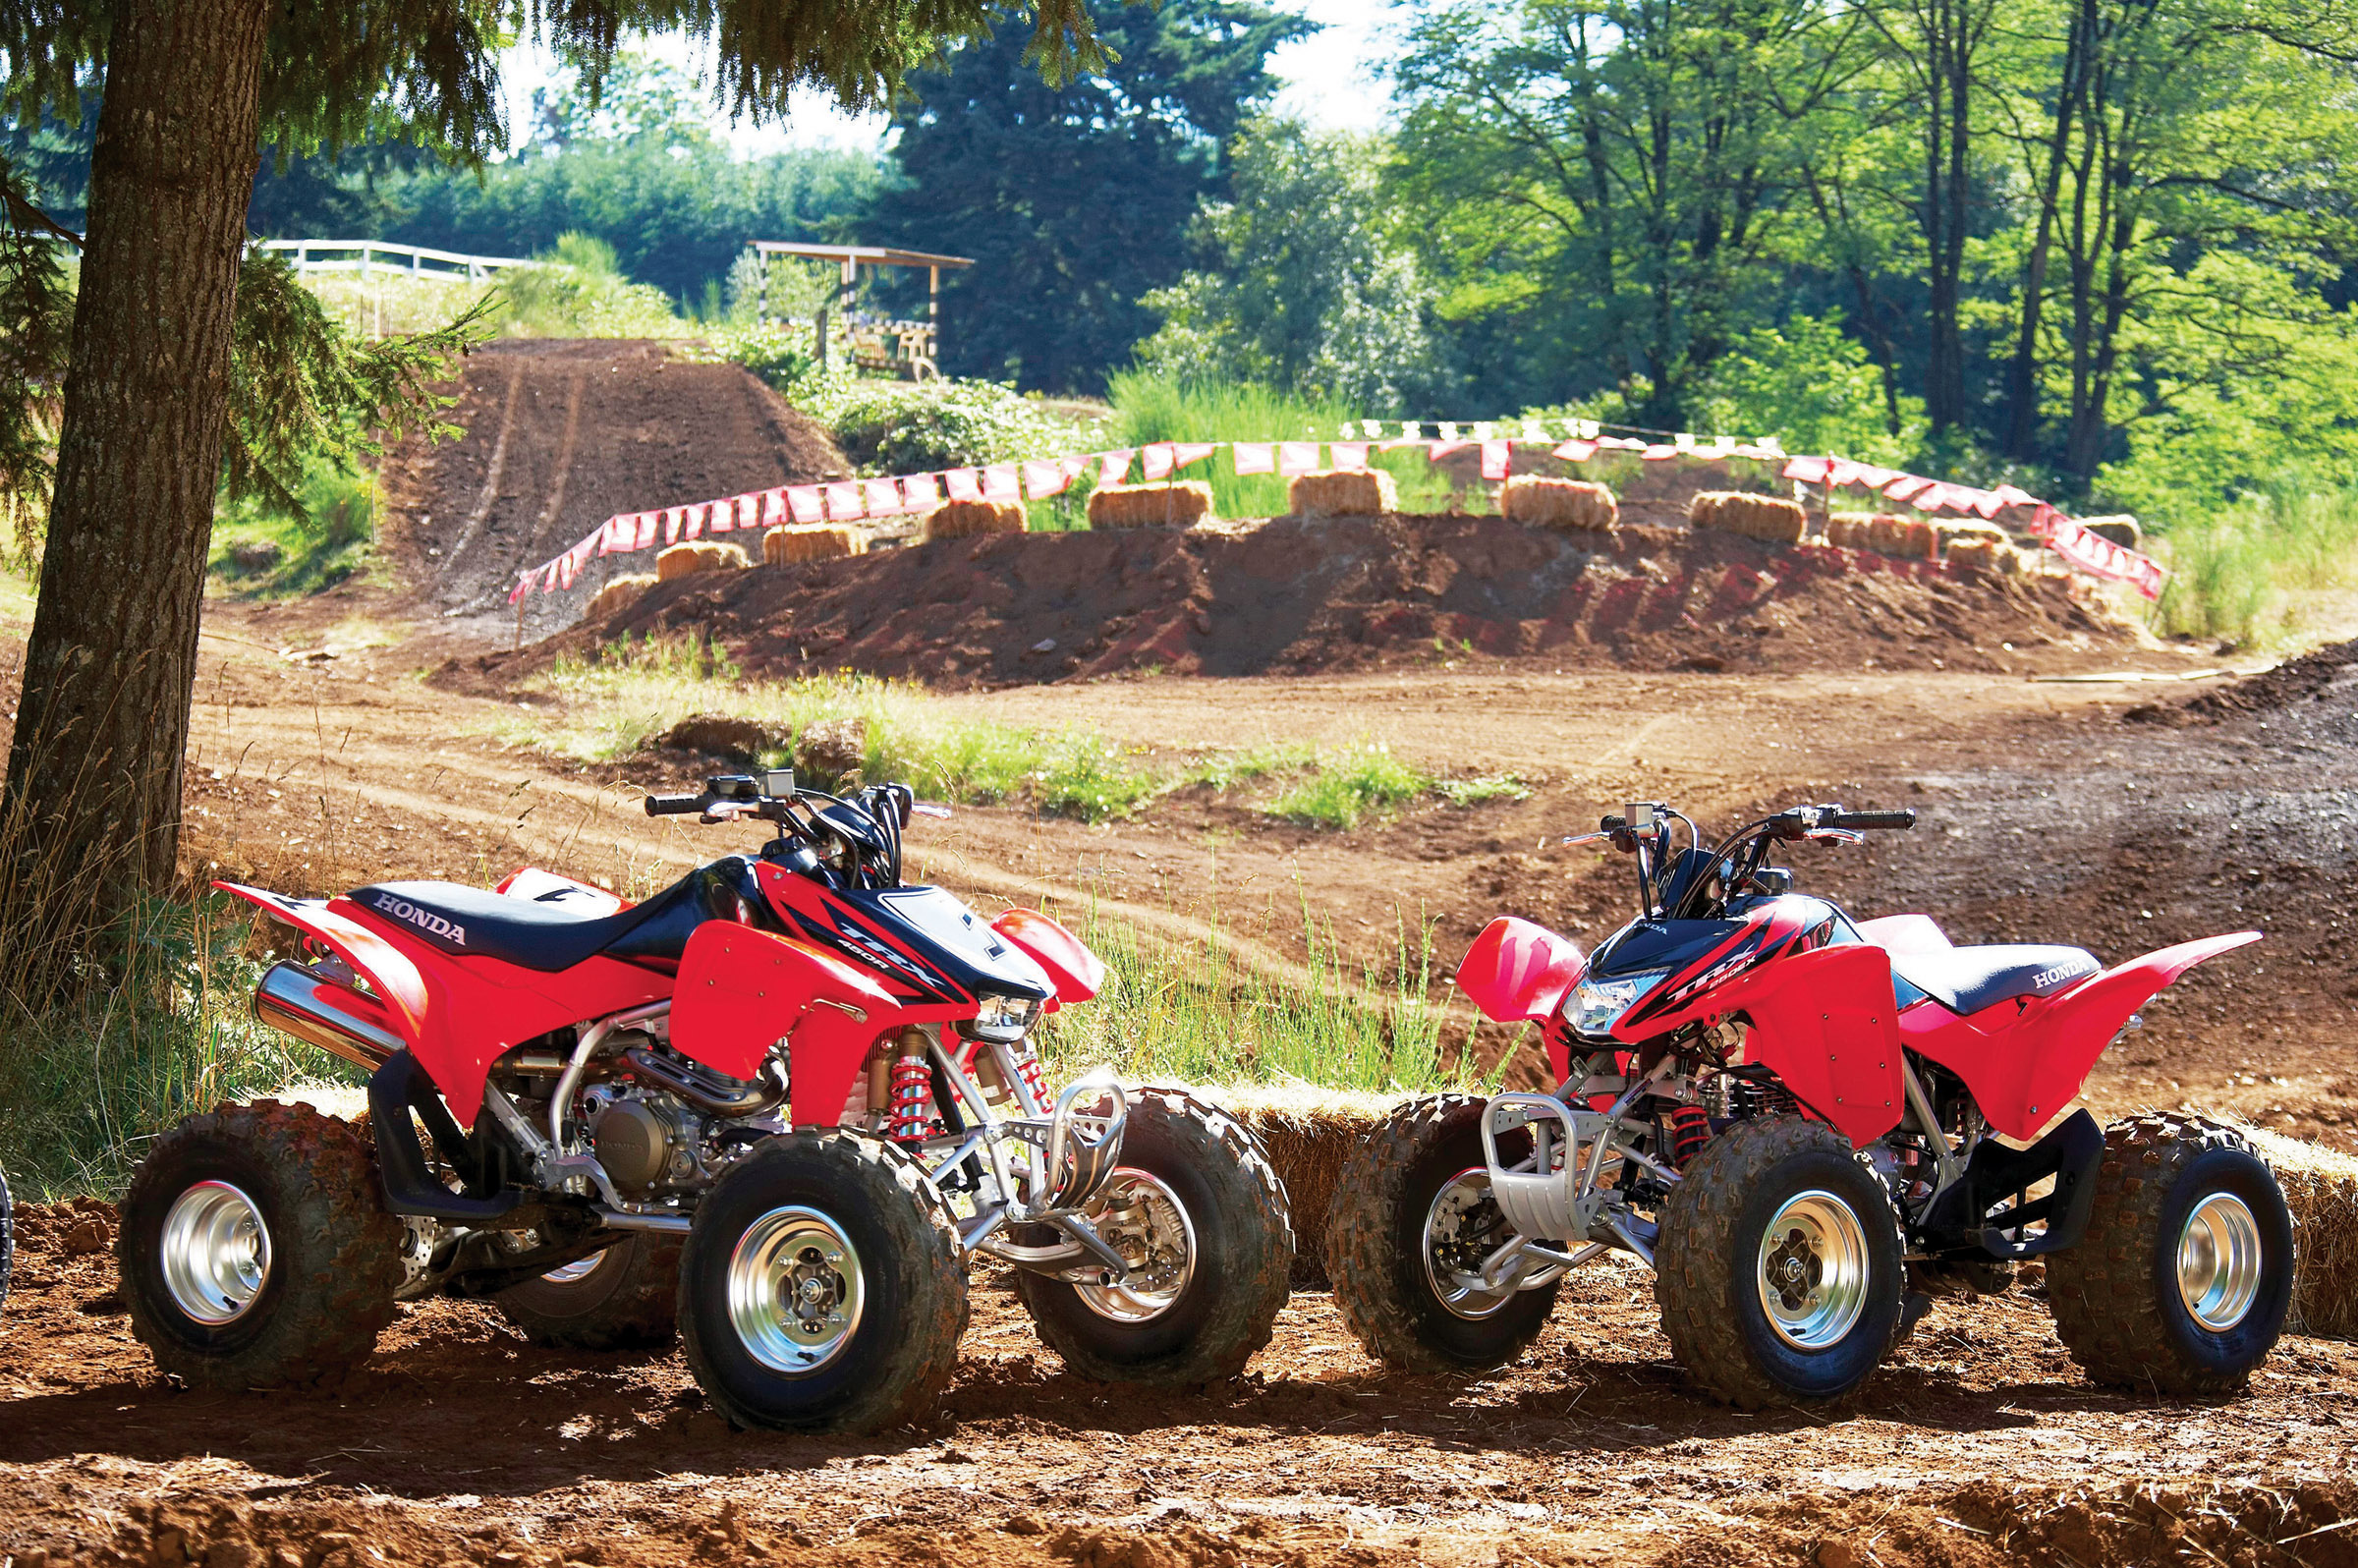 2006 Honda TRX450R ( Kick Start ) | Top Speed